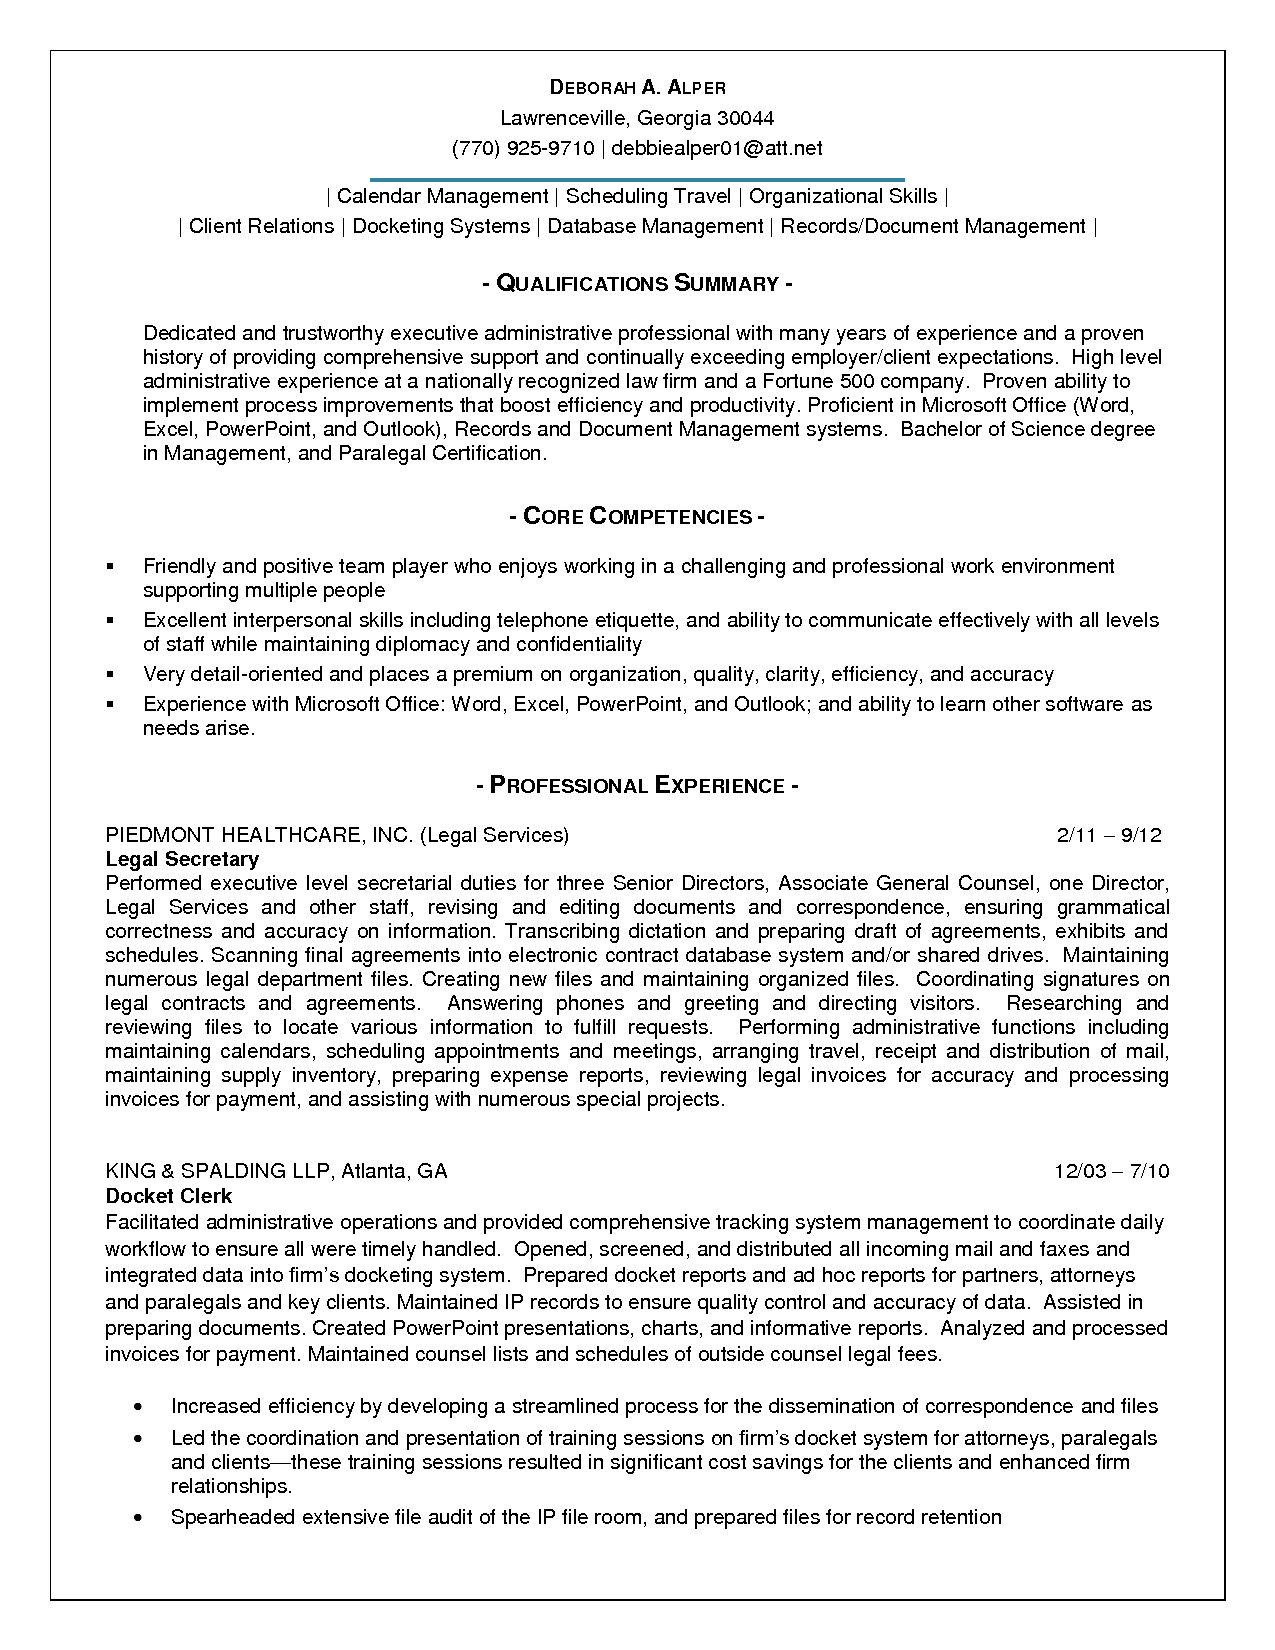 summary qualifications sample resume for administrative assistant ...